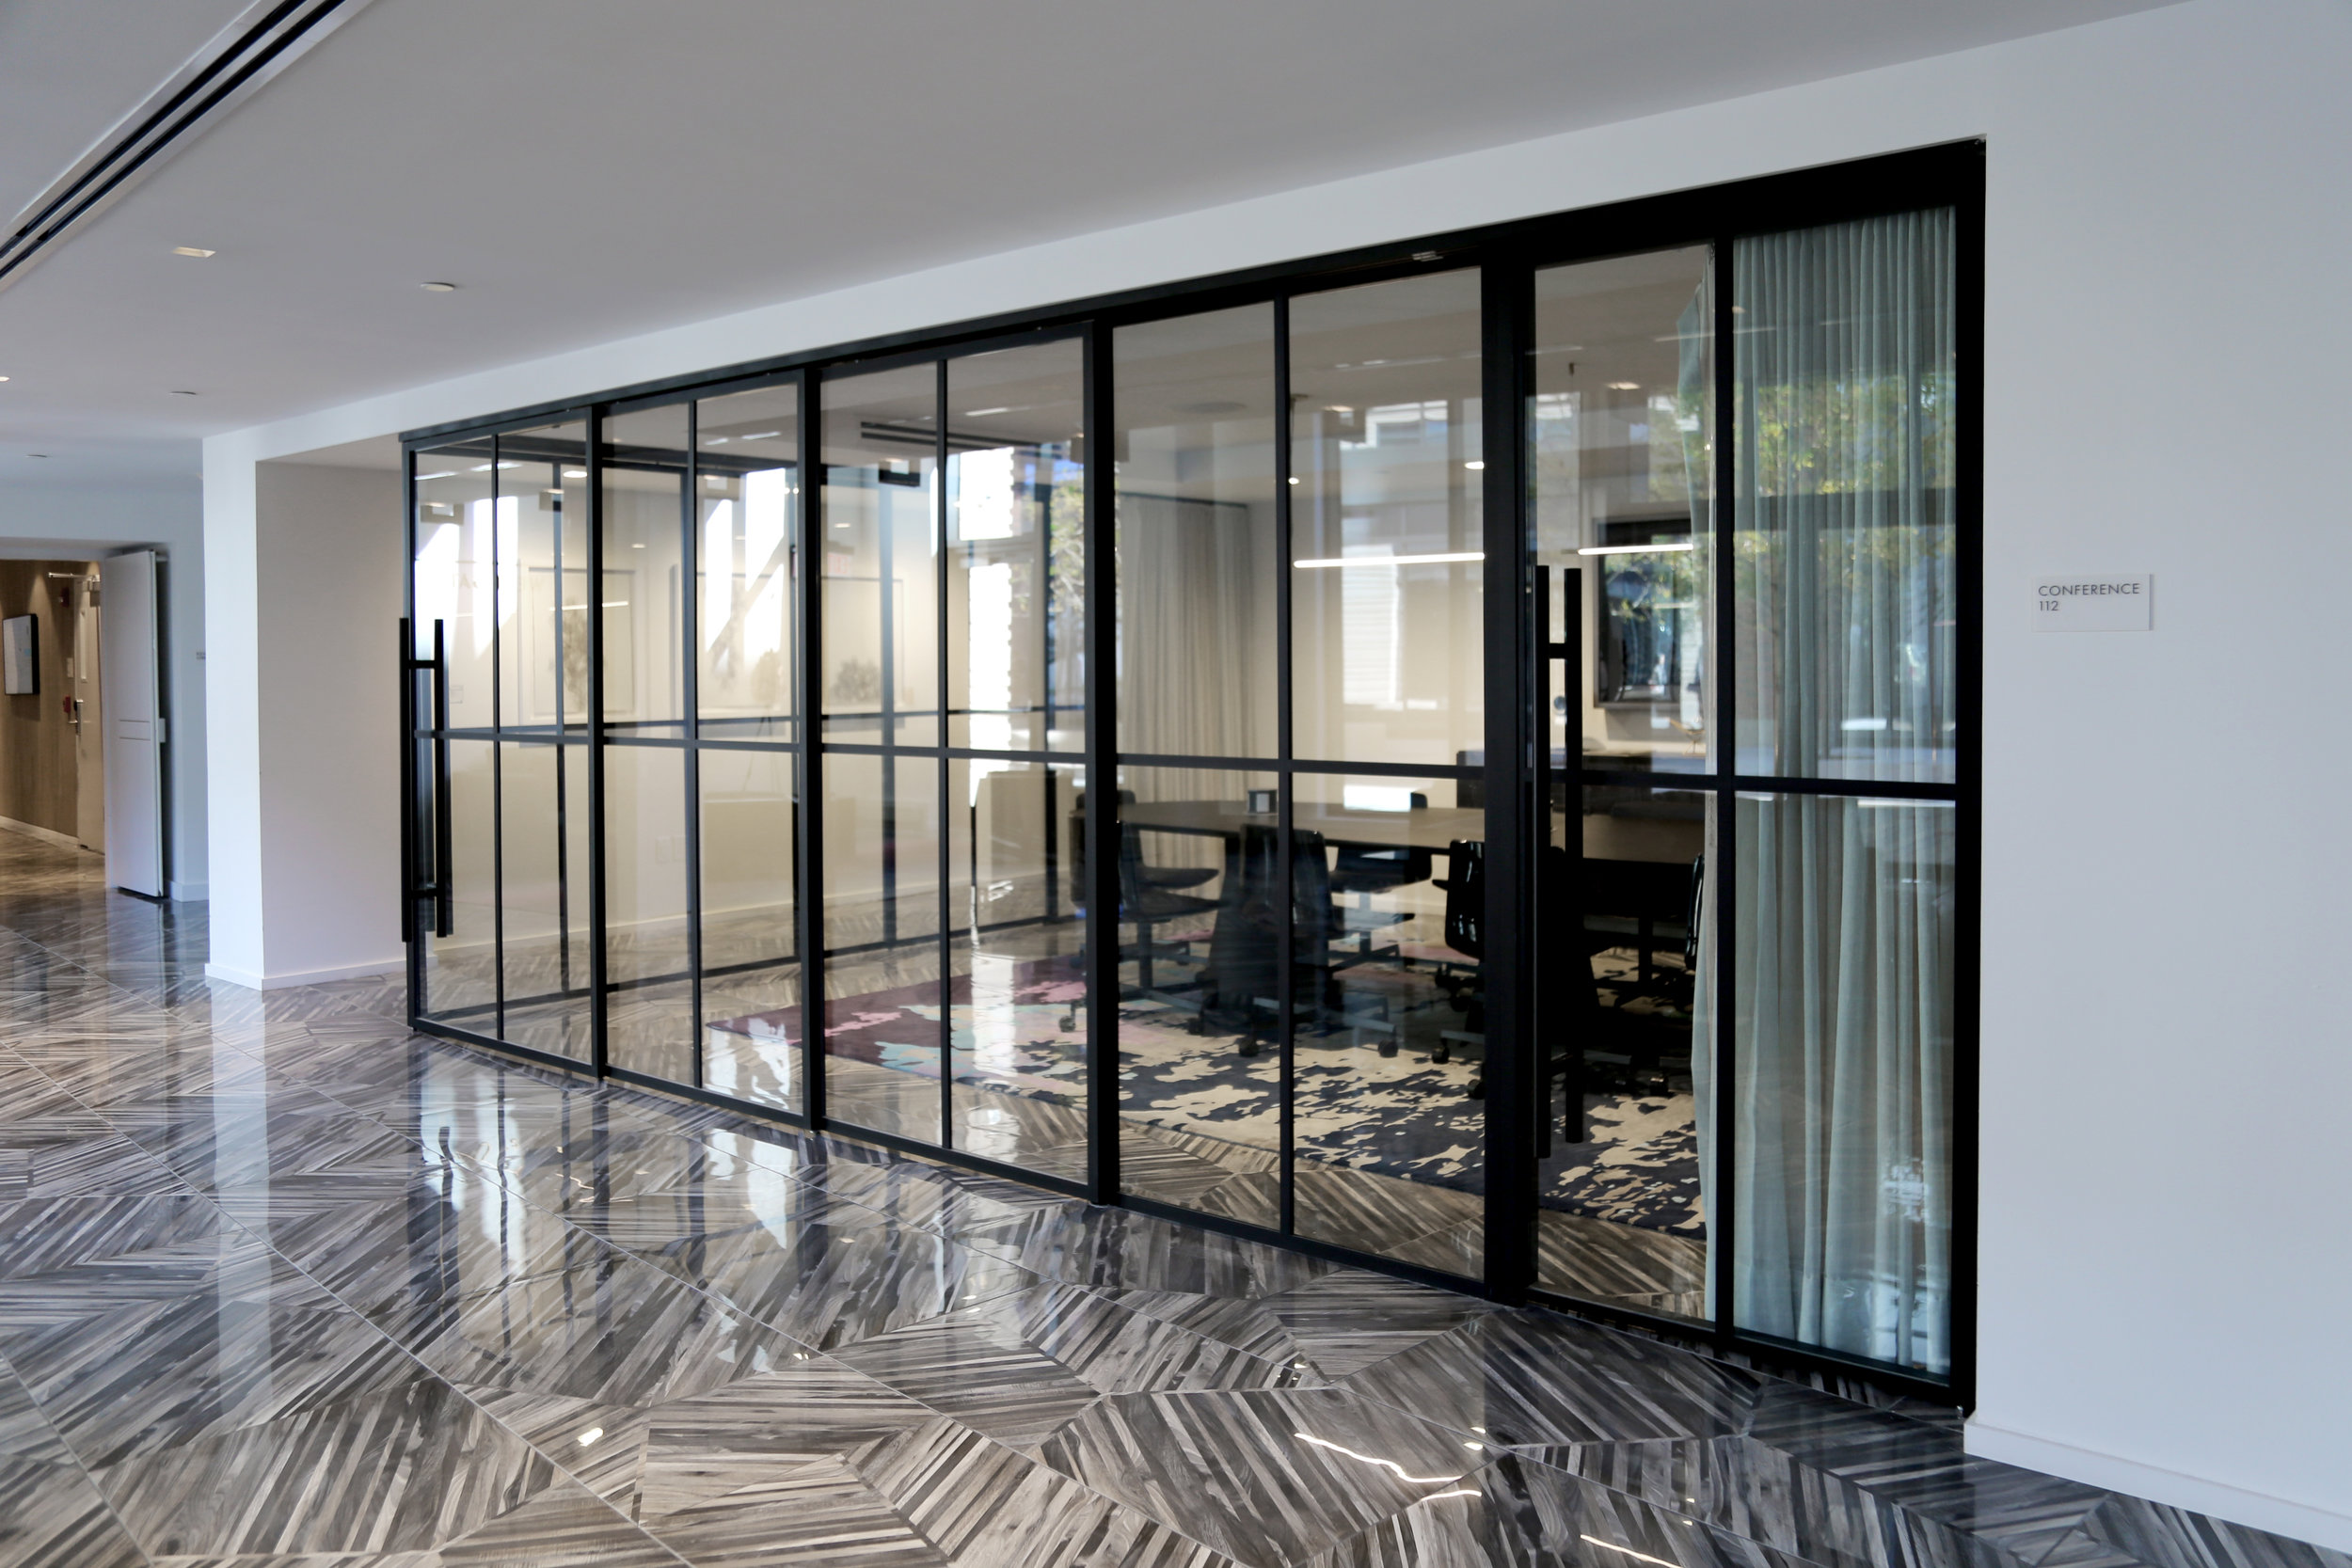 Modernus Black Anodized Sliding Glass Wall System - Spaceworks AI.jpg